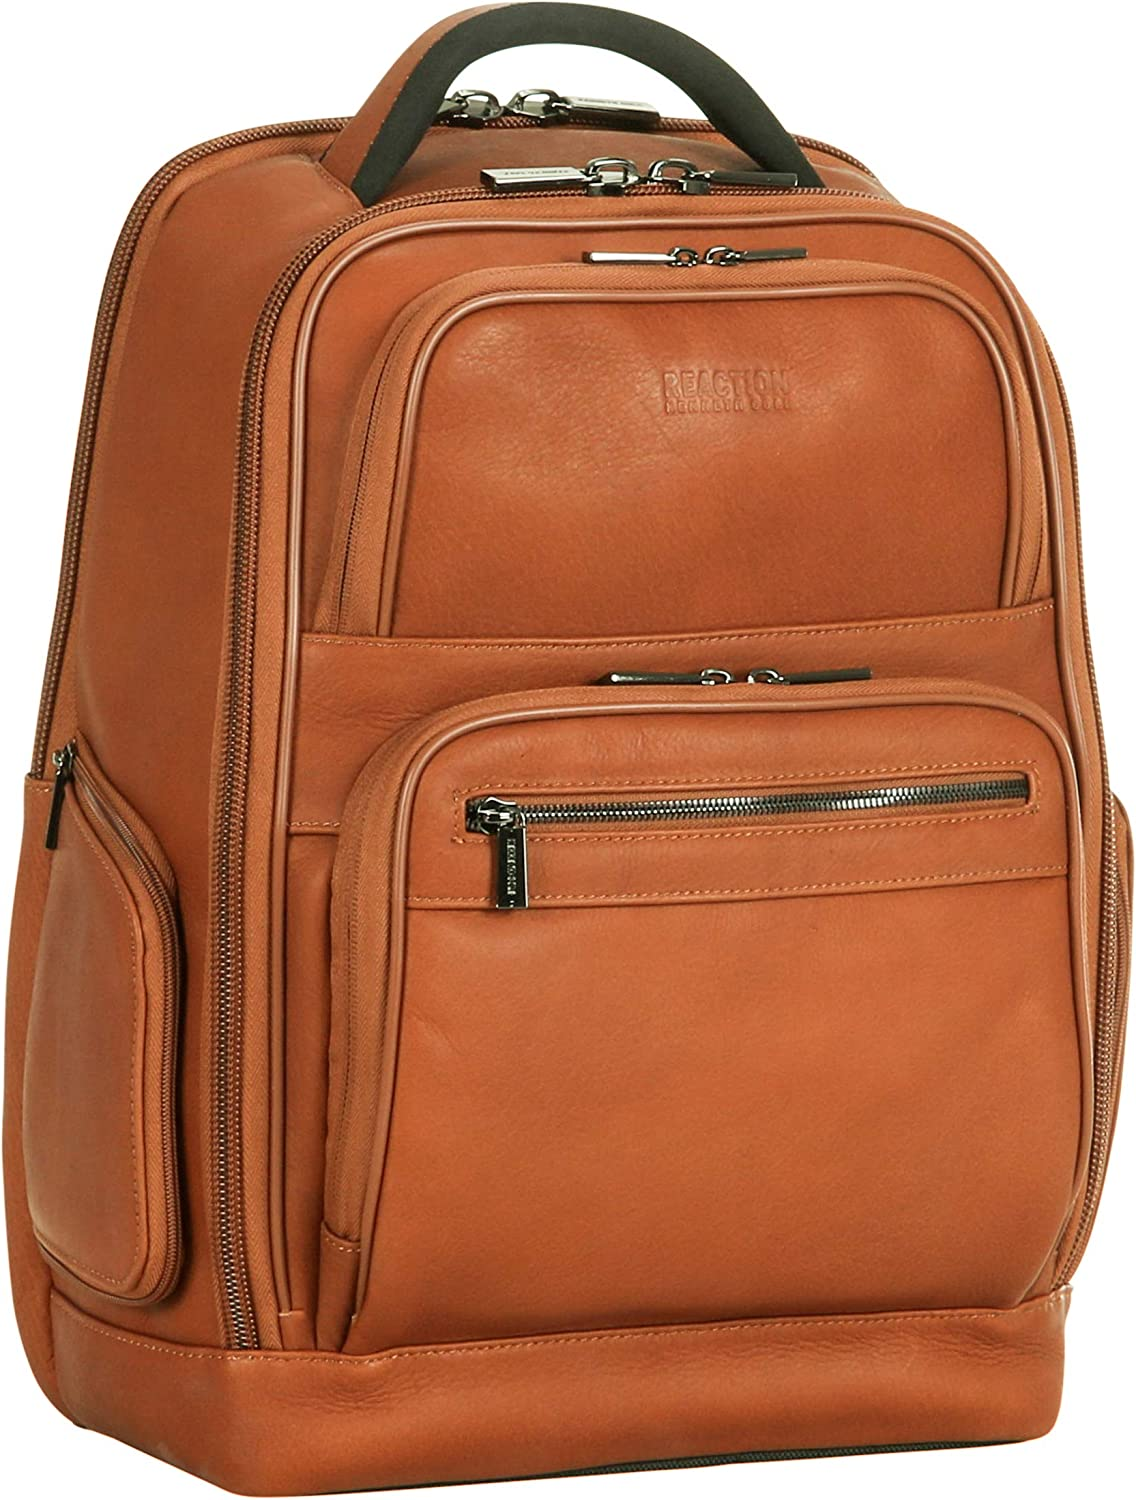 "Kenneth Cole Reaction Colombian Leather 15.6"" Laptop Anti-Theft RFID Business Backpack, Cognac"